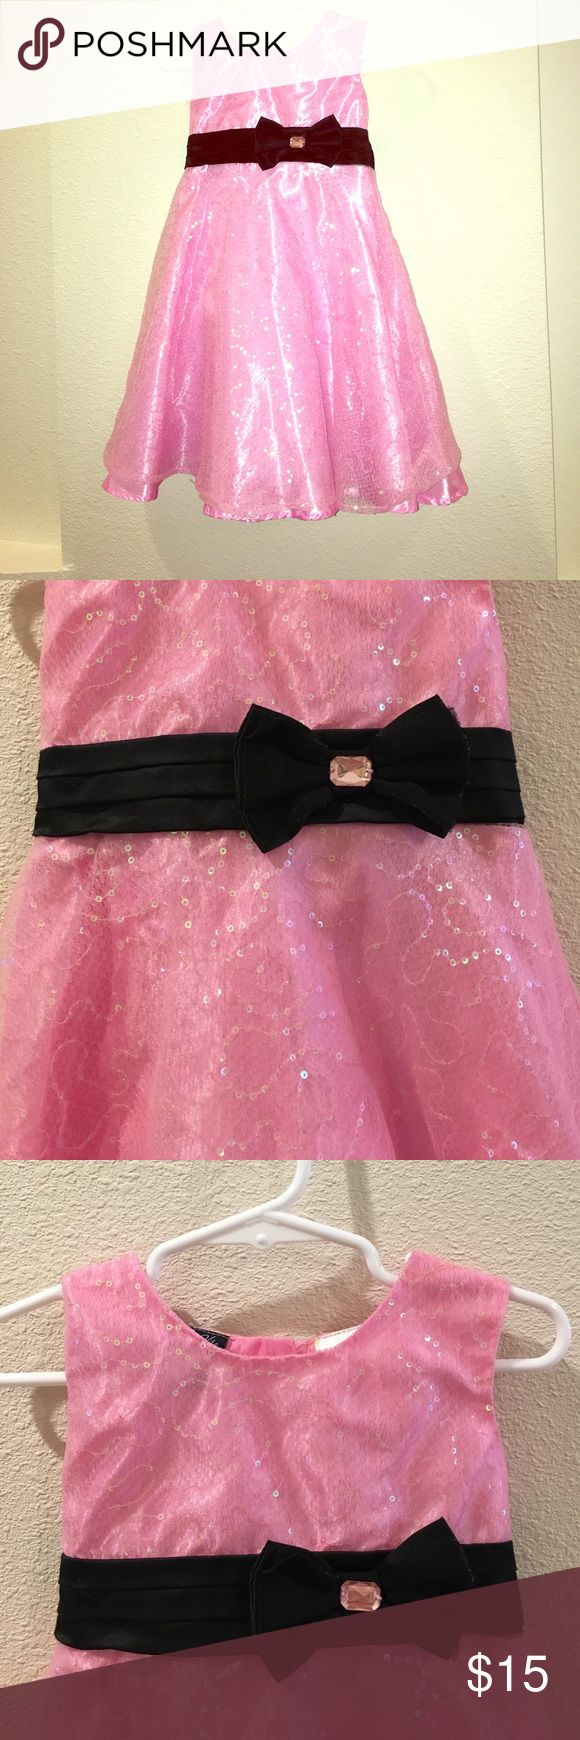 Gorgeous pink sparkly dress Gorgeous Sparkly/sequence dress.                                     Size - 2t.    Brand - So La Vita.    Condition - good pre-owned condition.     Pet/smoke free home.                       *please message me if you have any questions, we try to ship items the same day as purchased. so La Vita Dresses Formal